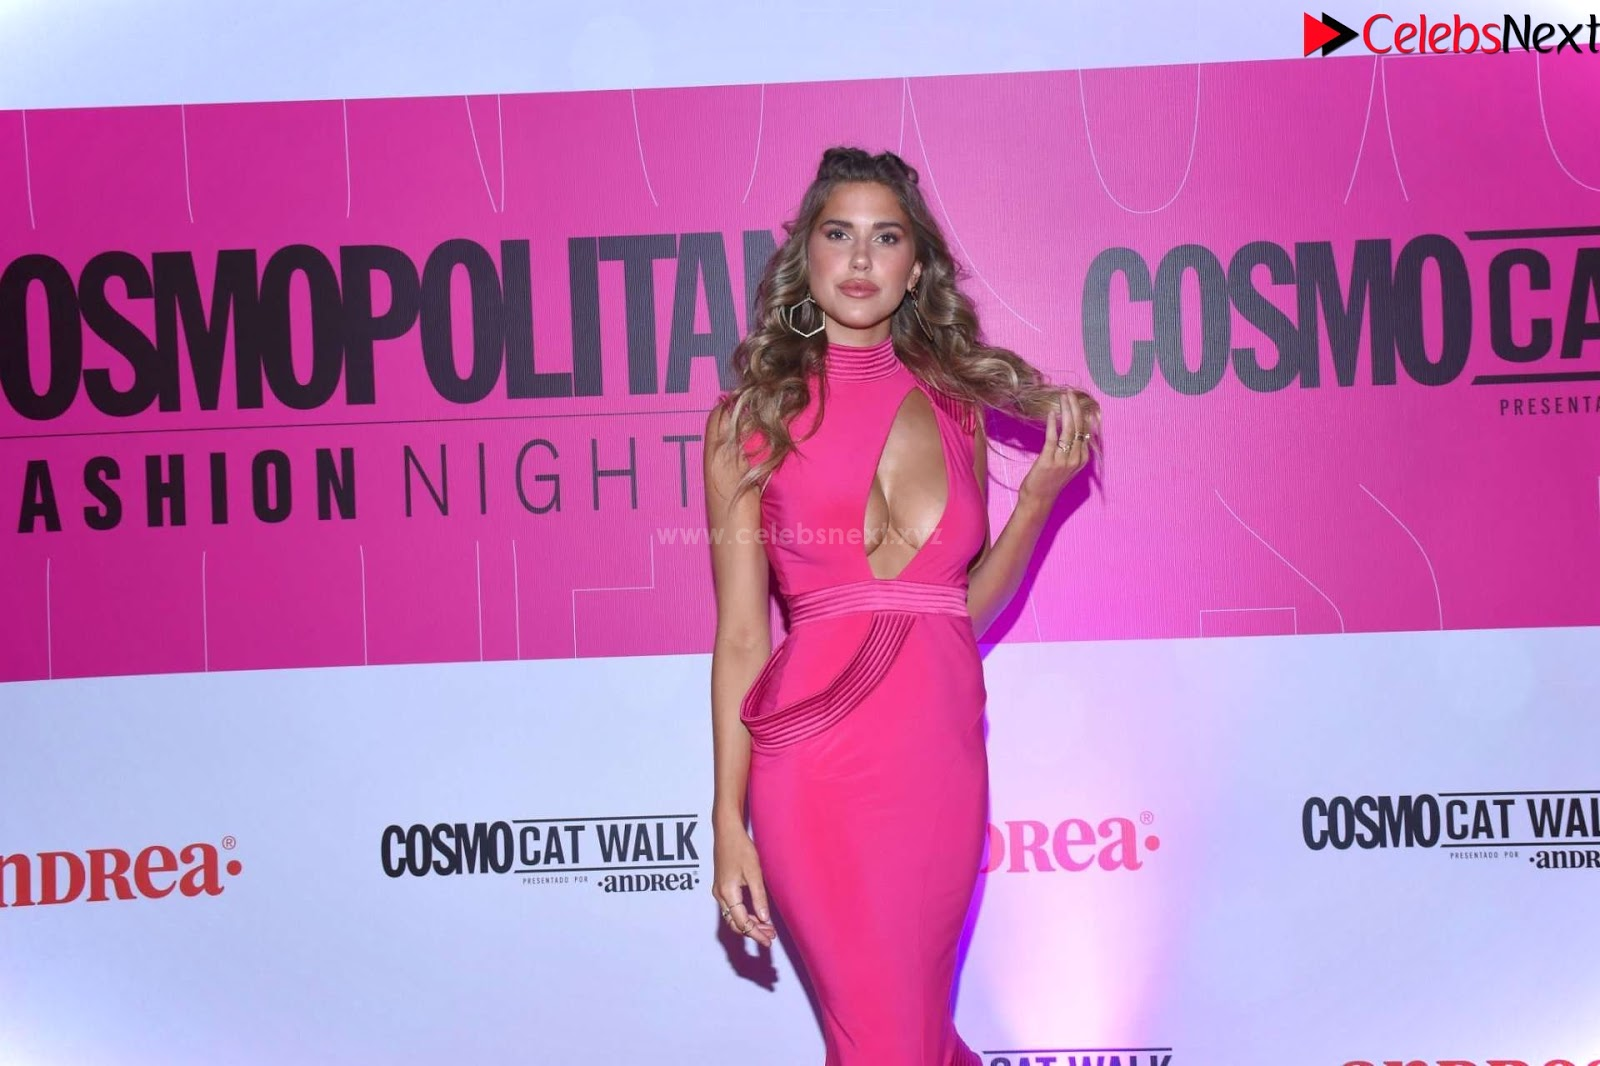 Kara Dell Toro In Stunning Pink Gown at Cosmopolitan Fashion Night in Mexico_CelebSneXt.xyz Exclusive Pics